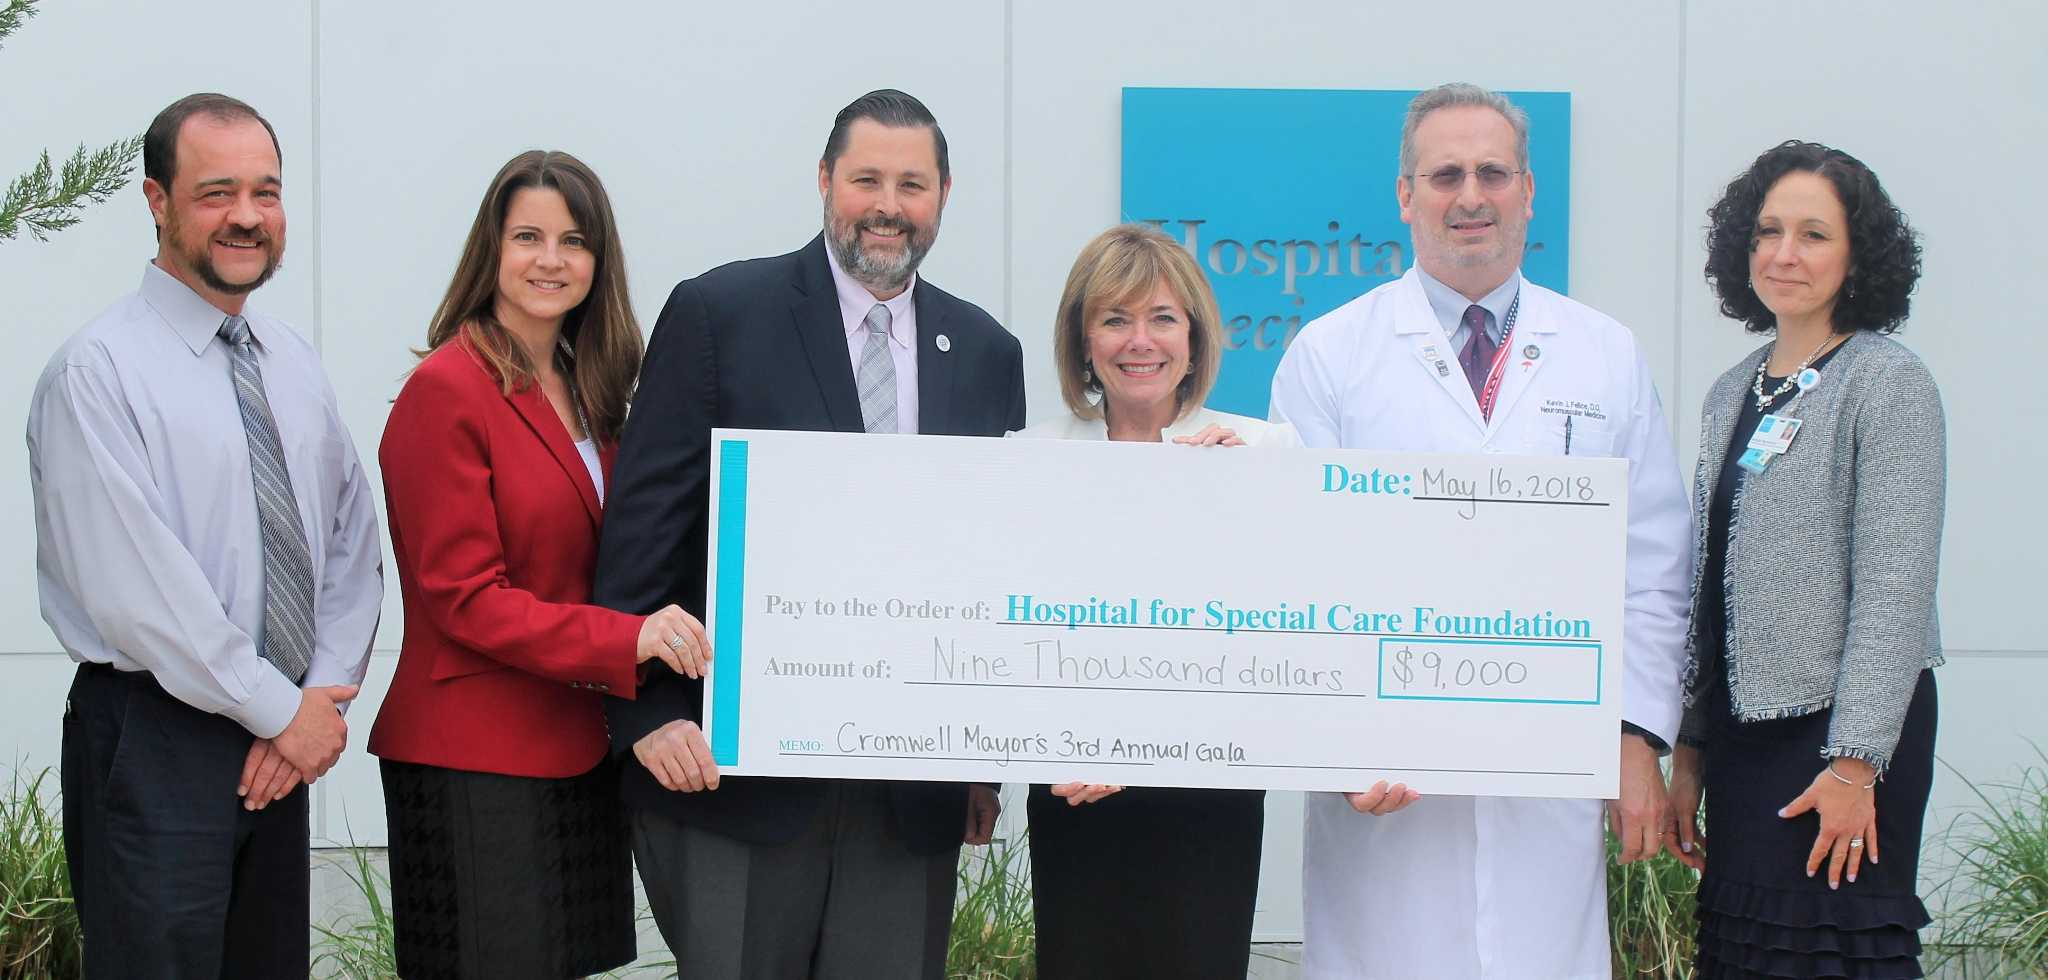 Cromwell mayor's ball gives $9,000 to Hospital for Special